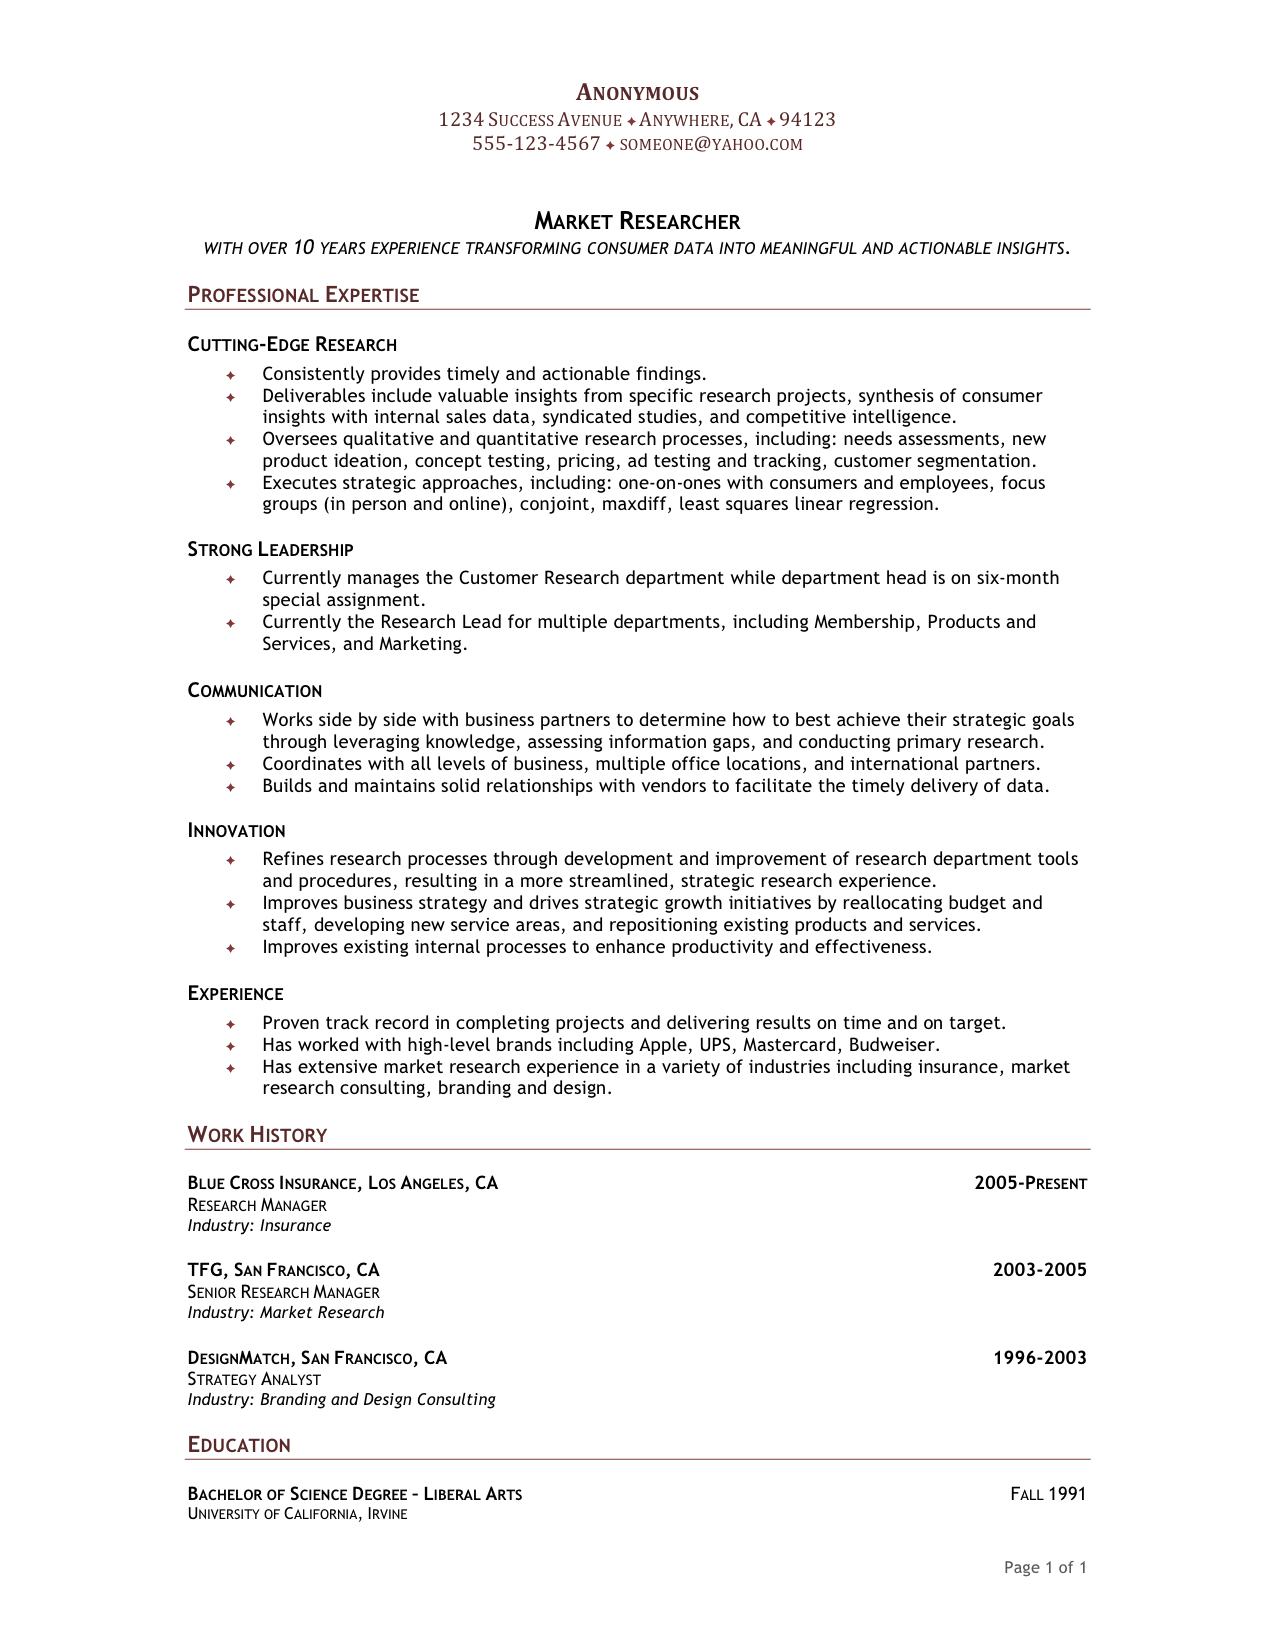 resume samples chronological vs function resume formats robin to